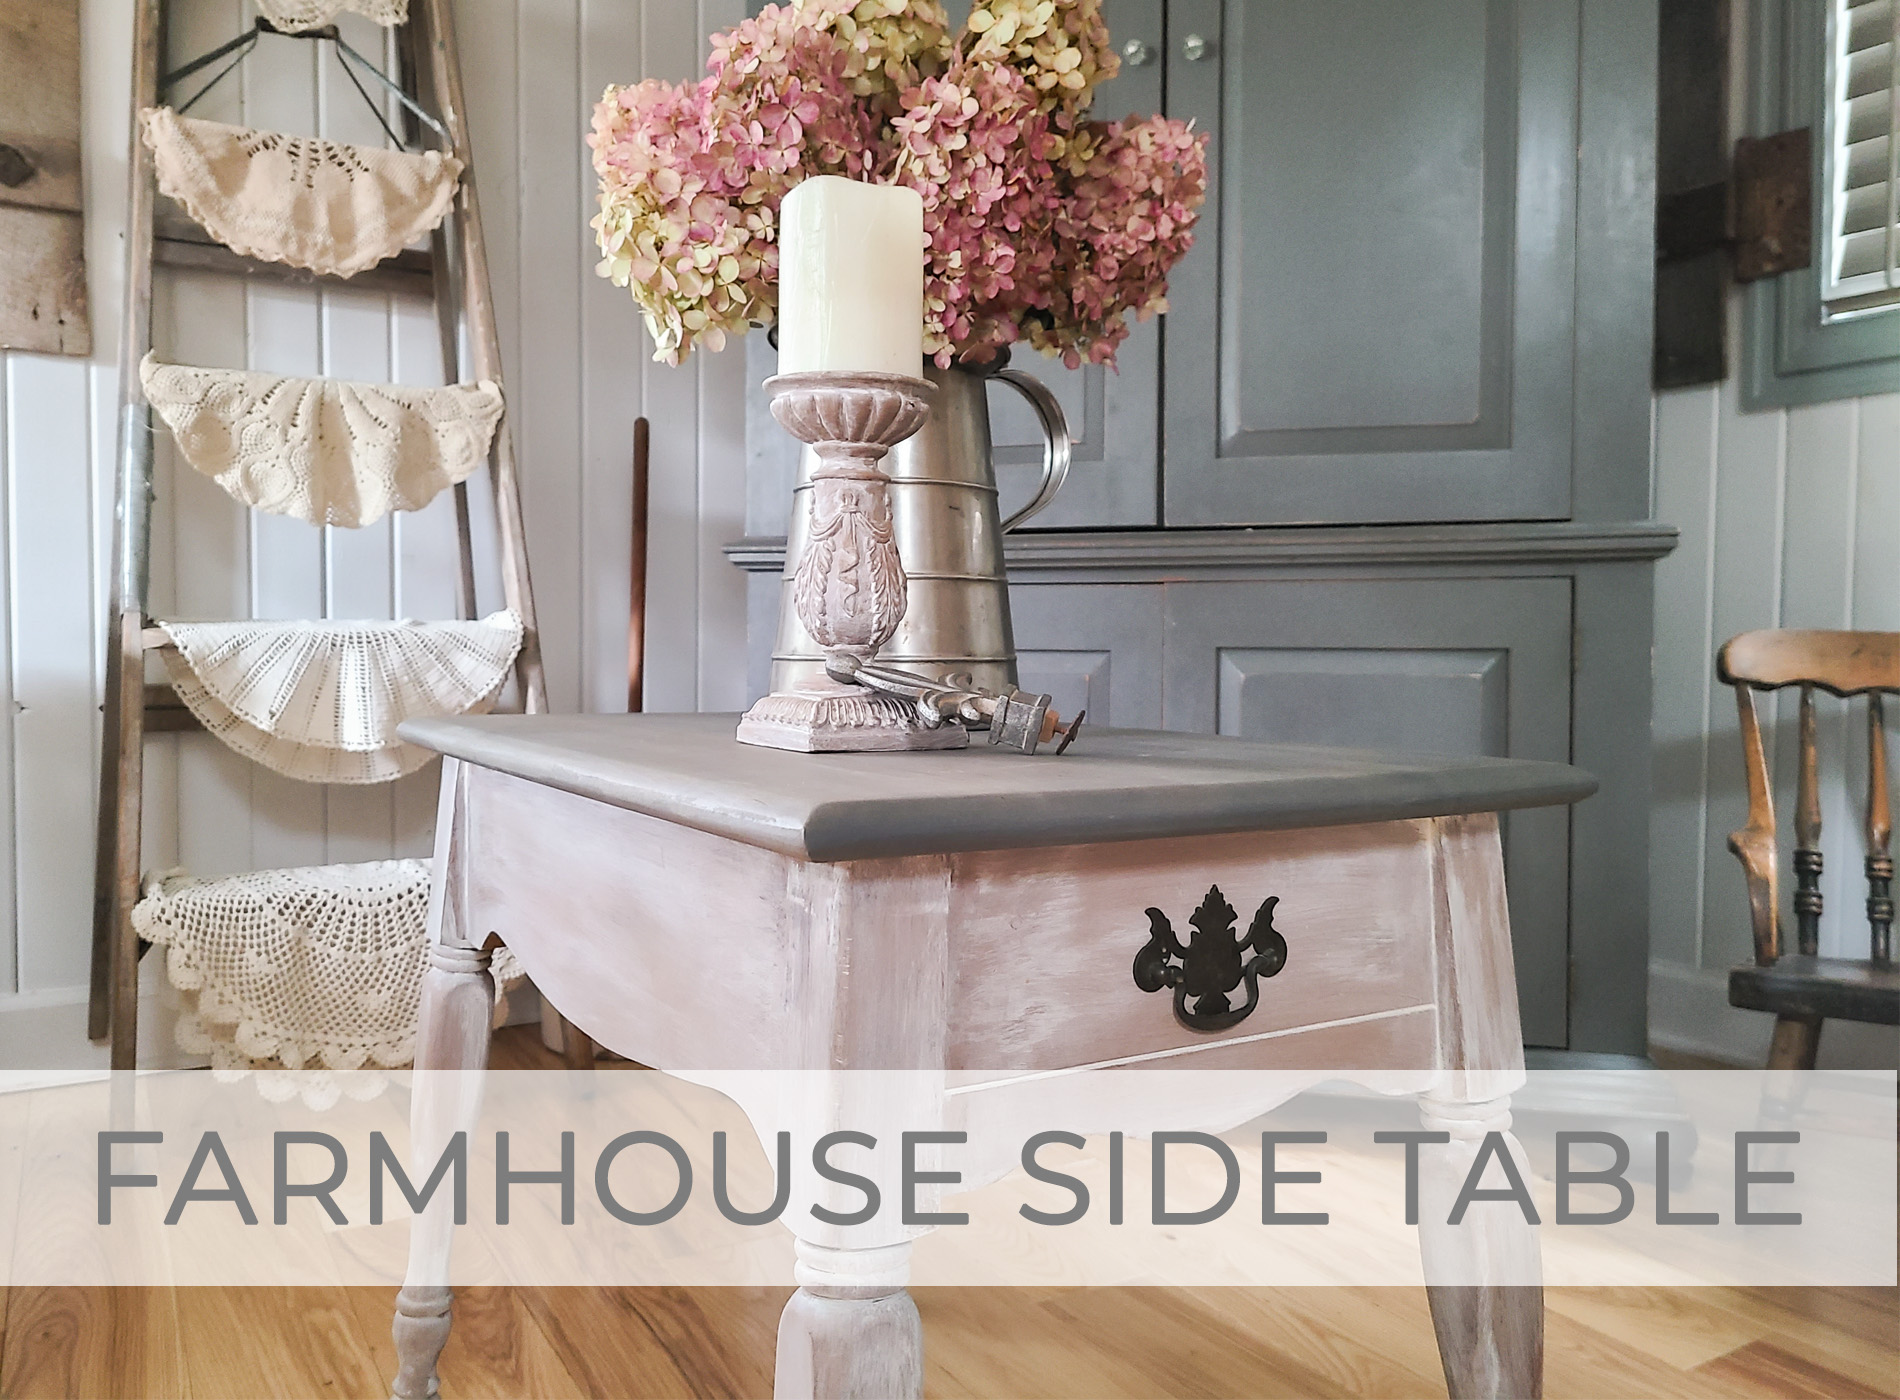 Vintage Farmhouse Table Makeover by Larissa of Prodigal Pieces   prodigalpieces.com #prodigalpieces